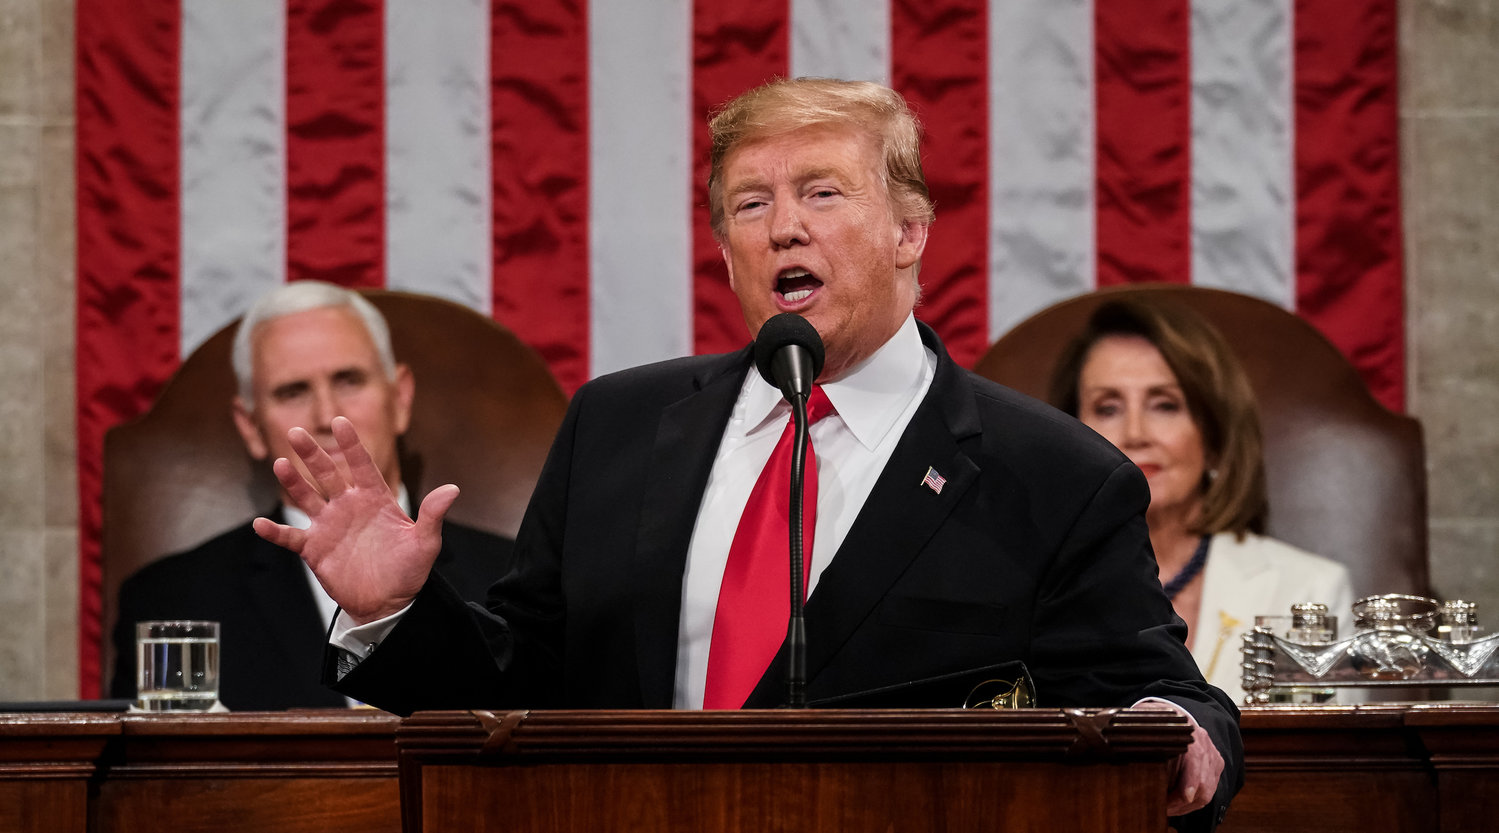 President Donald Trump delivers the State of the Union address at the Capitol on Feb. 5.